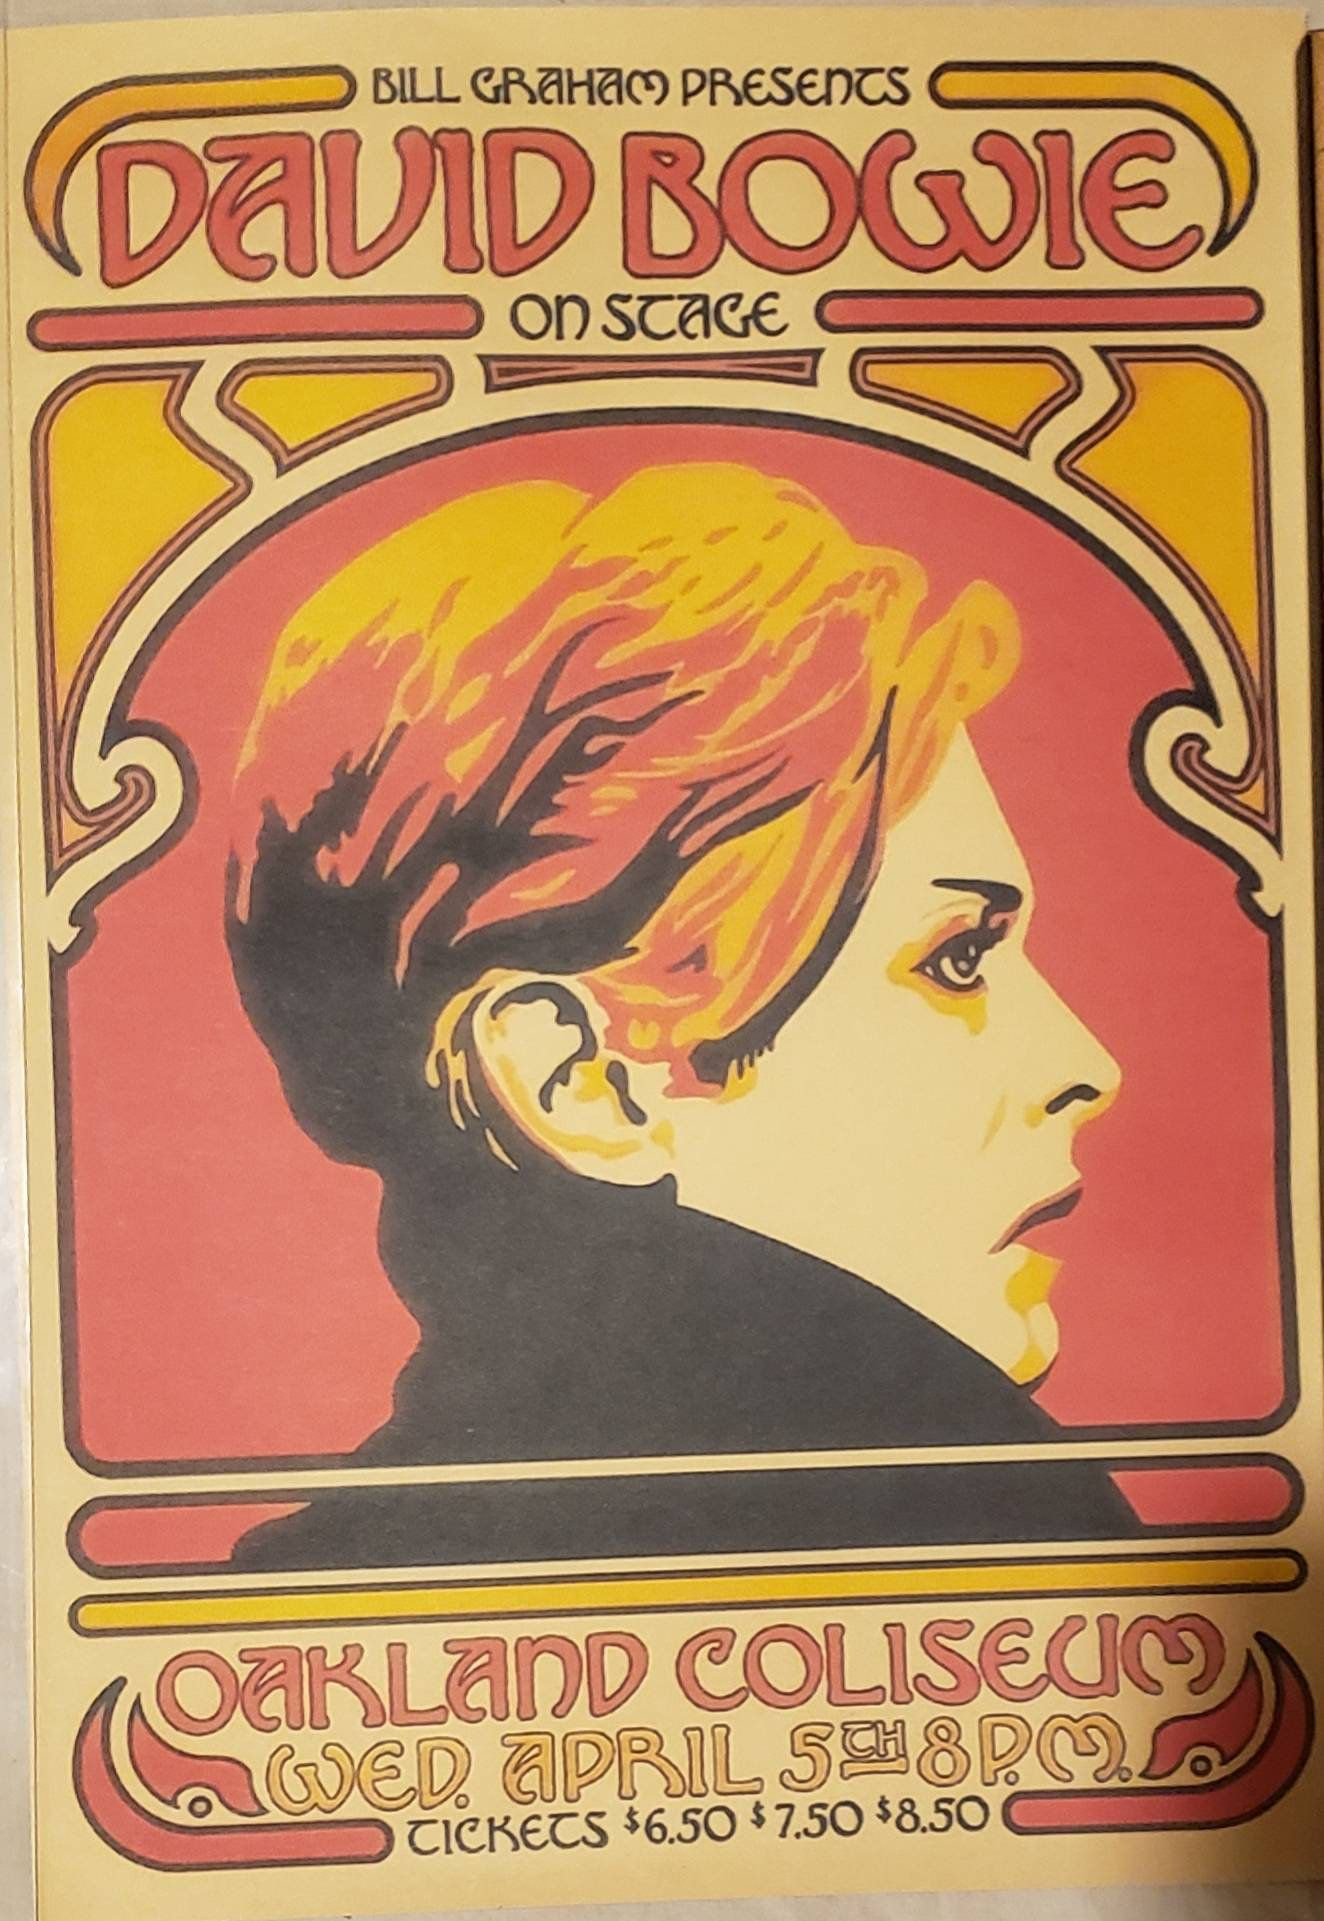 David bowie concert poster reproduction for his concert at